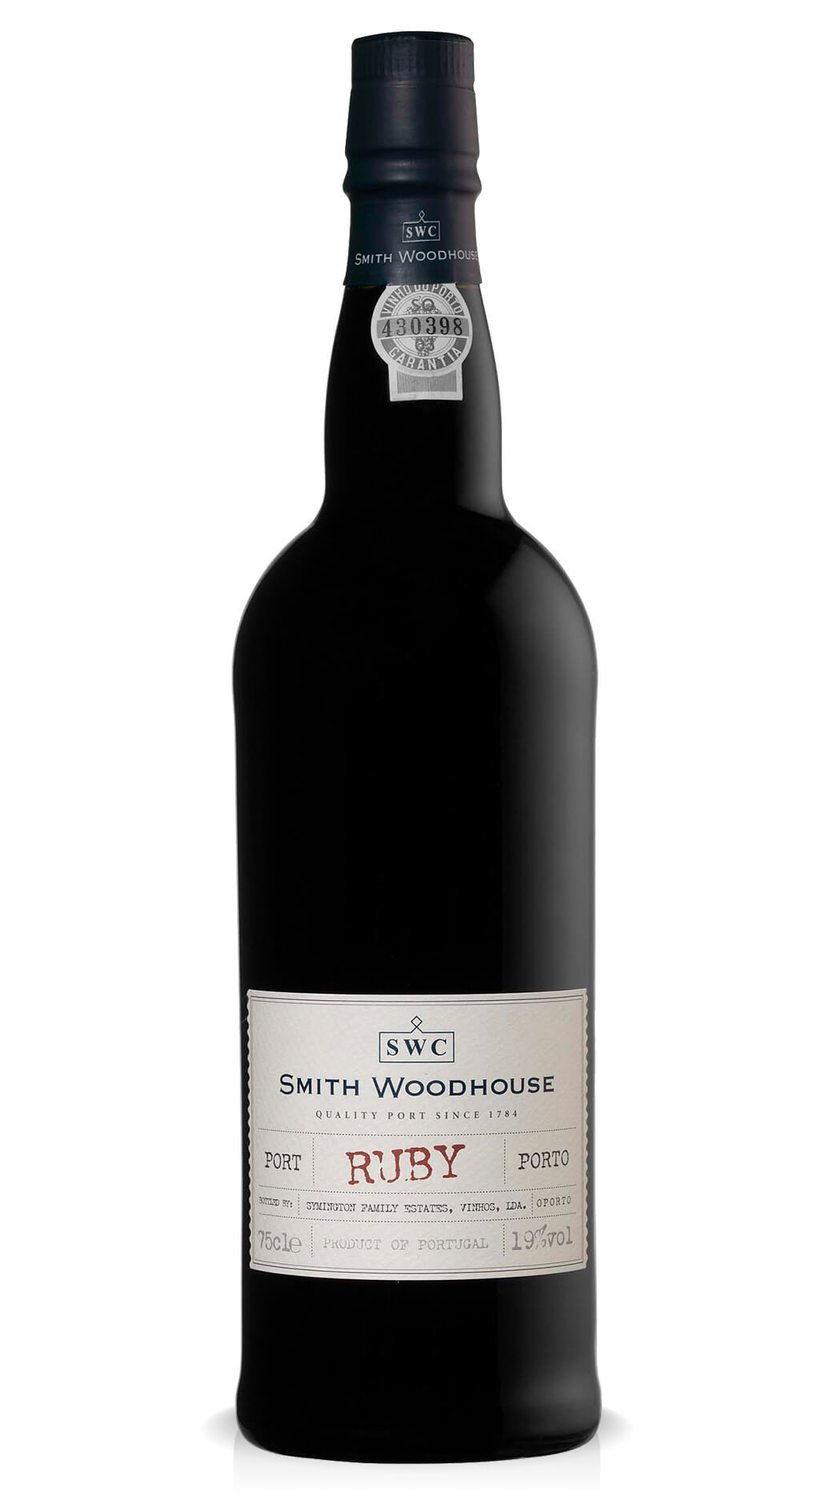 Smith Woodhouse Ruby Port